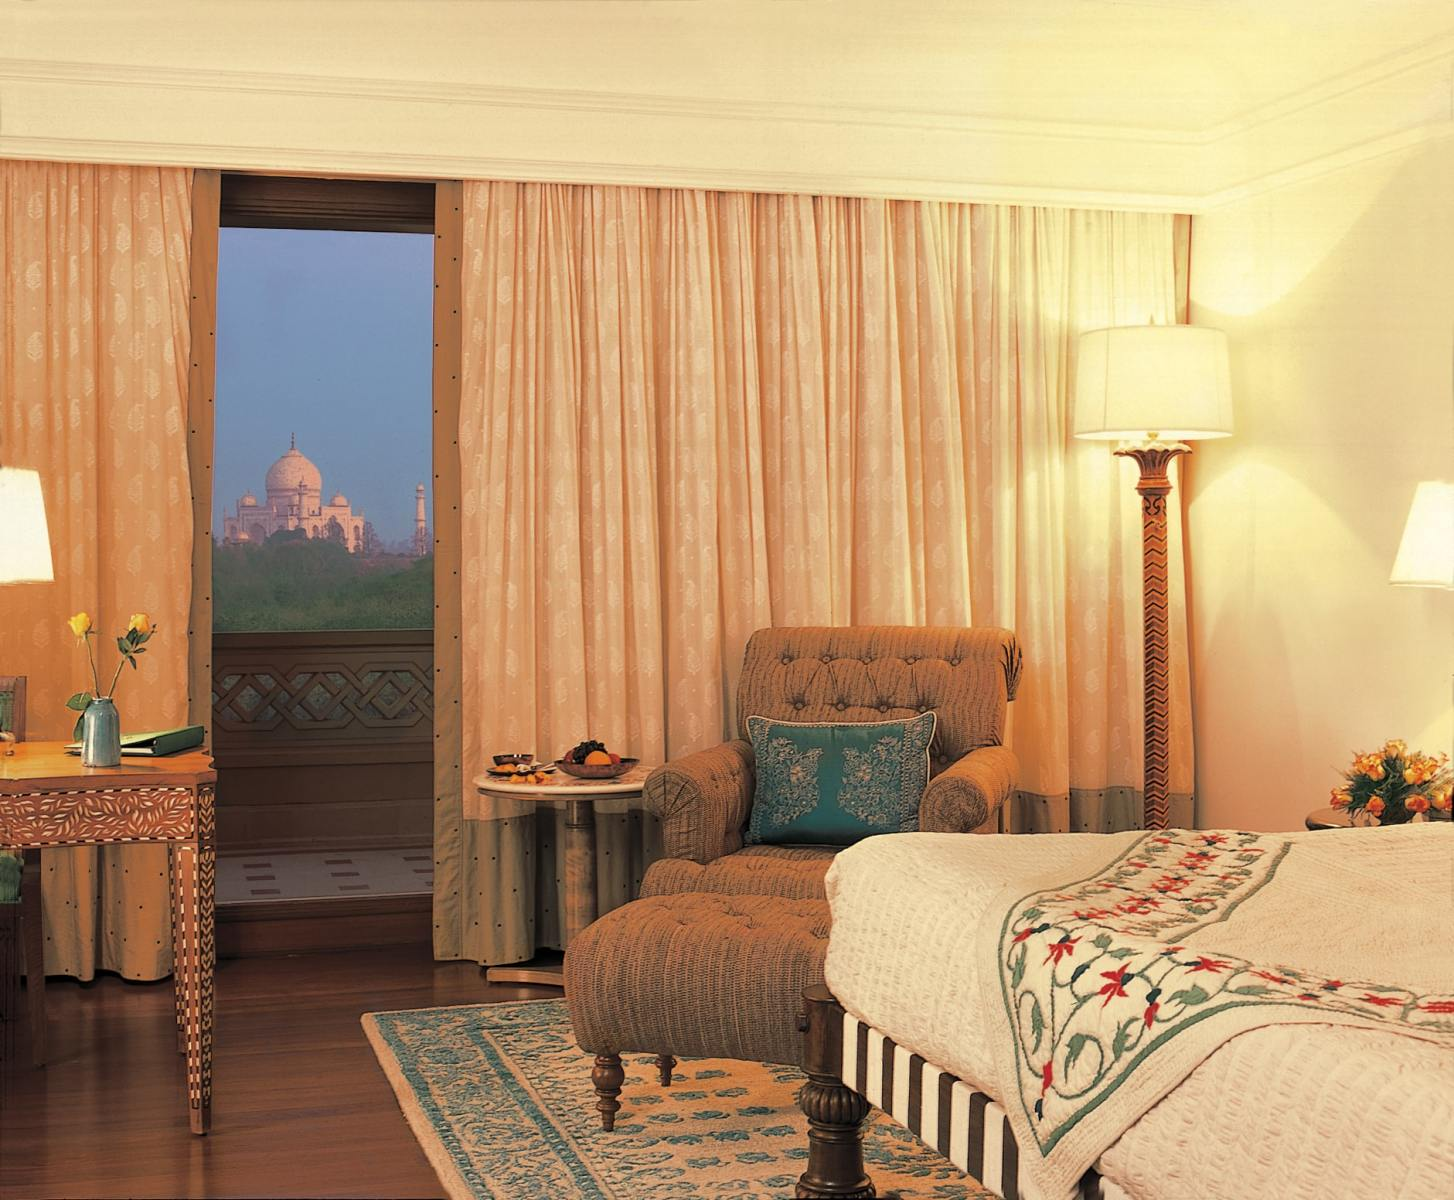 011-The-Oberoi-Amarvilas-Agra-Deluxe-Room-min